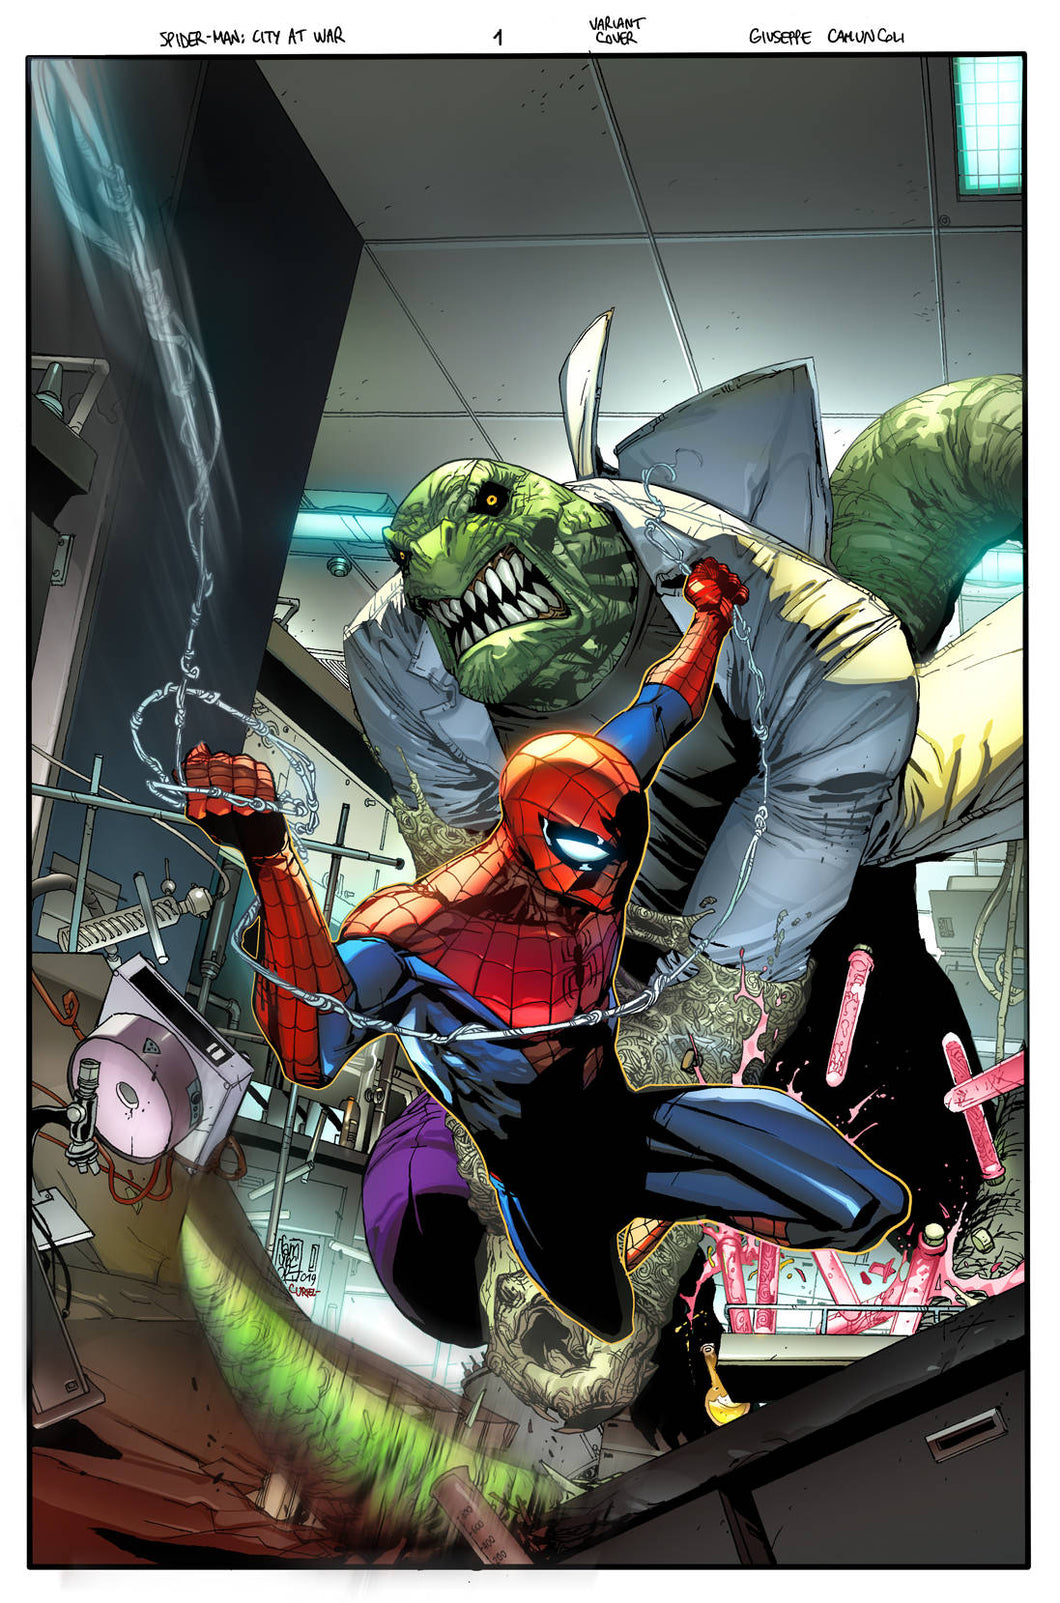 SPIDER-MAN CITY AT WAR #1 (OF 6) VILLAINS VARIANT 03/20/19 FOC 02/25/19